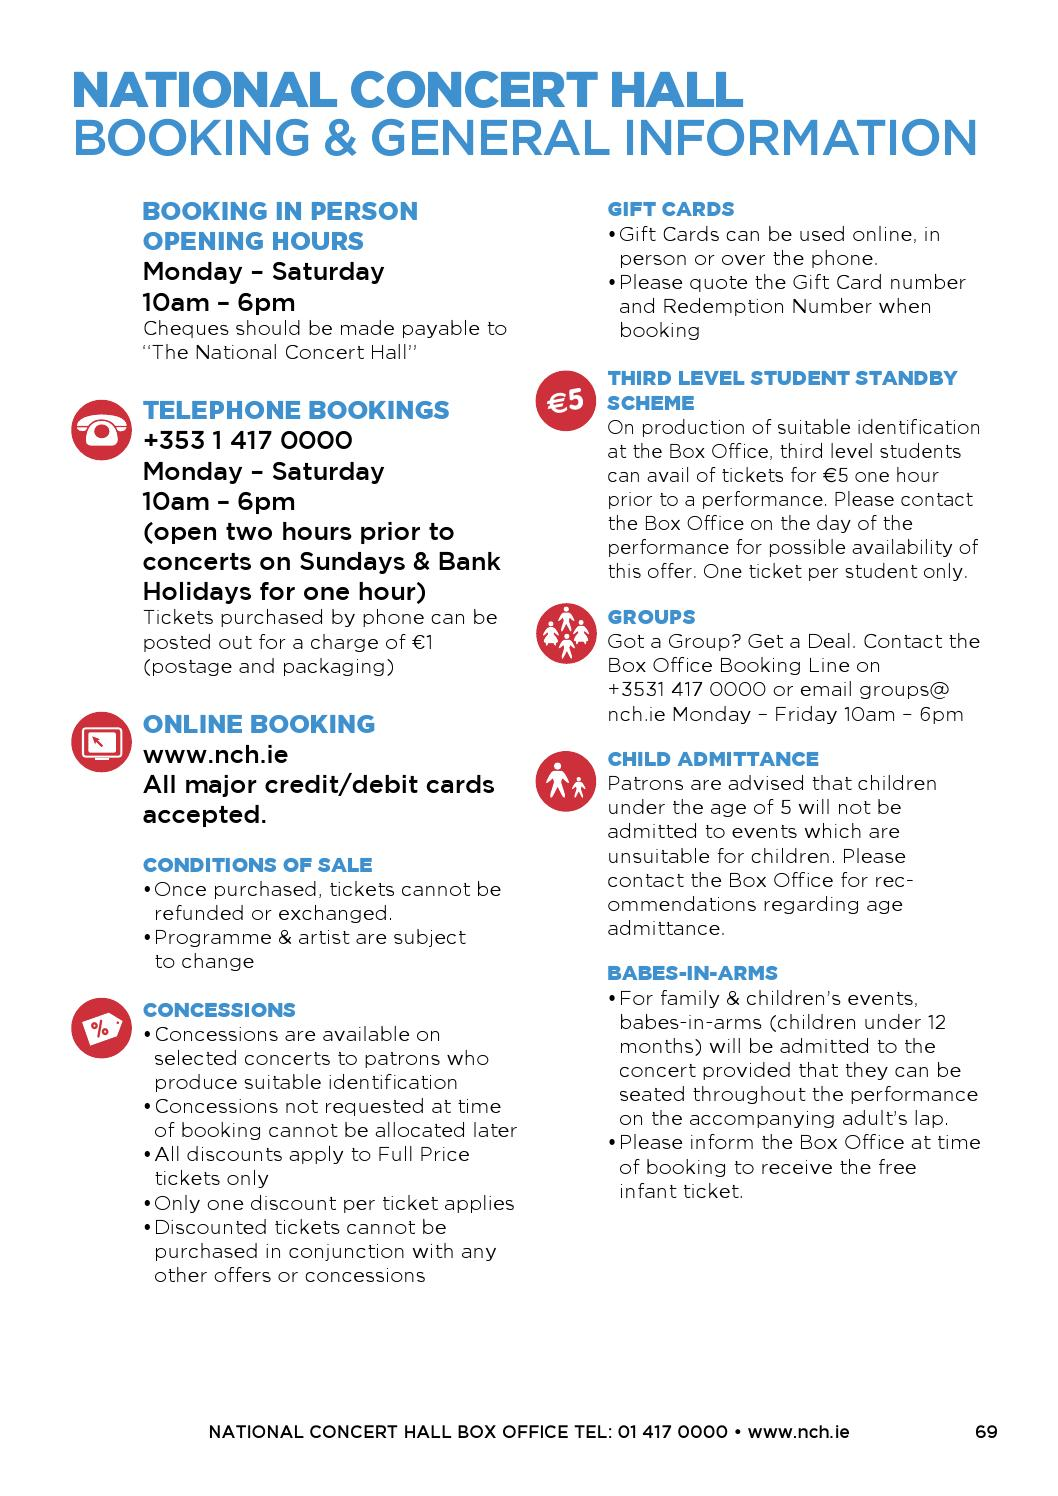 NCH Calendar of Events (June - August 2014) by National